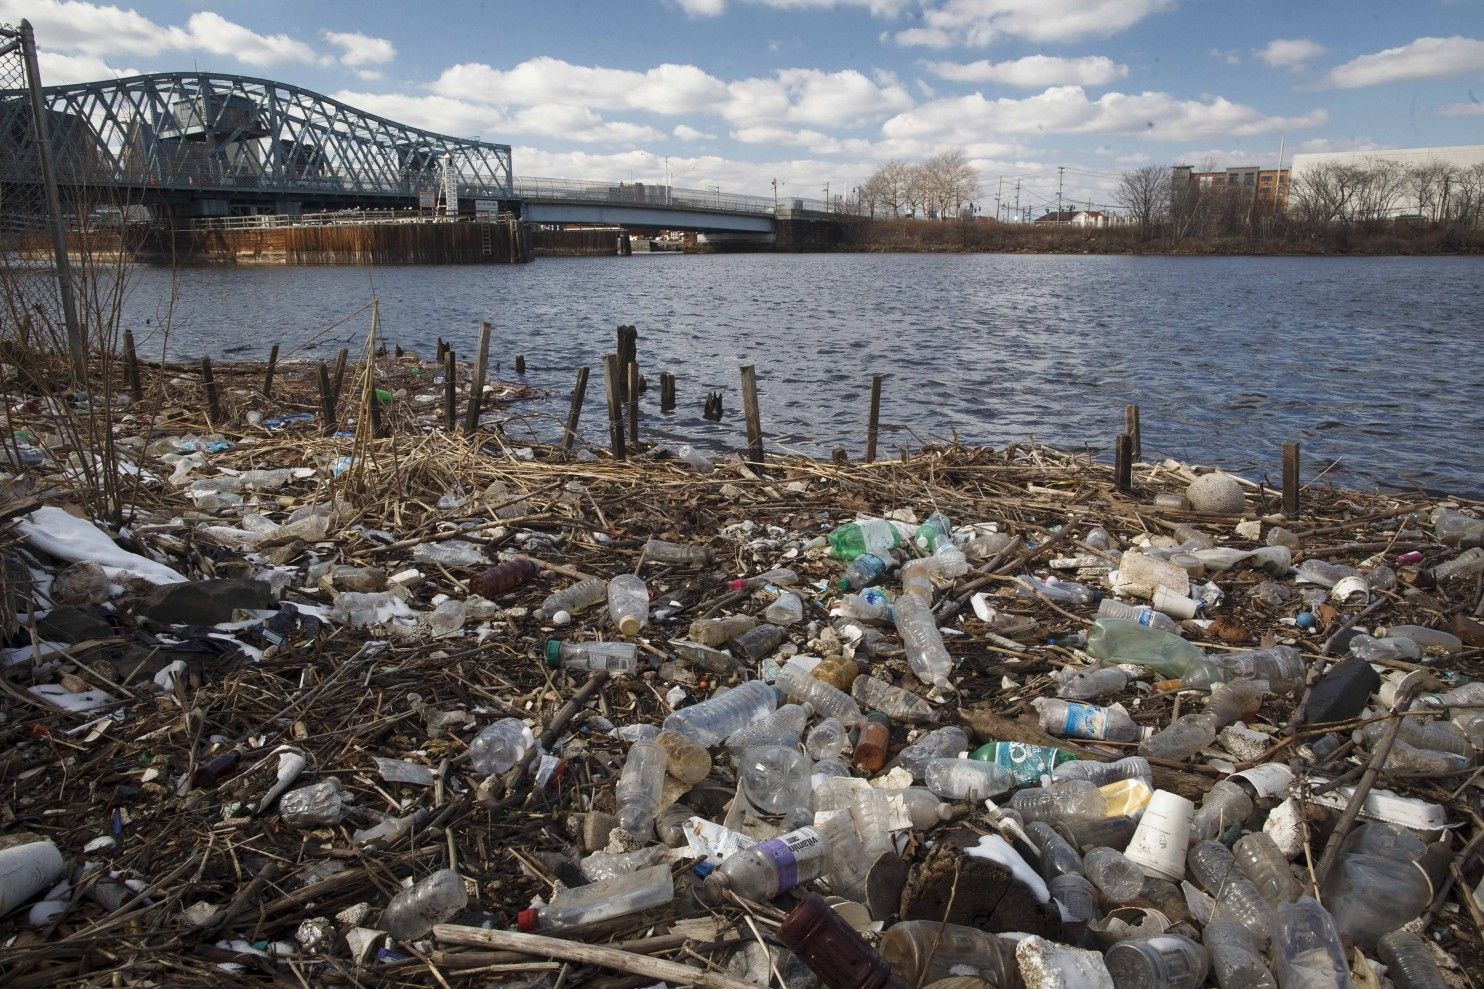 The EPA gets closer to cleaning up one of the nation's most polluted rivers